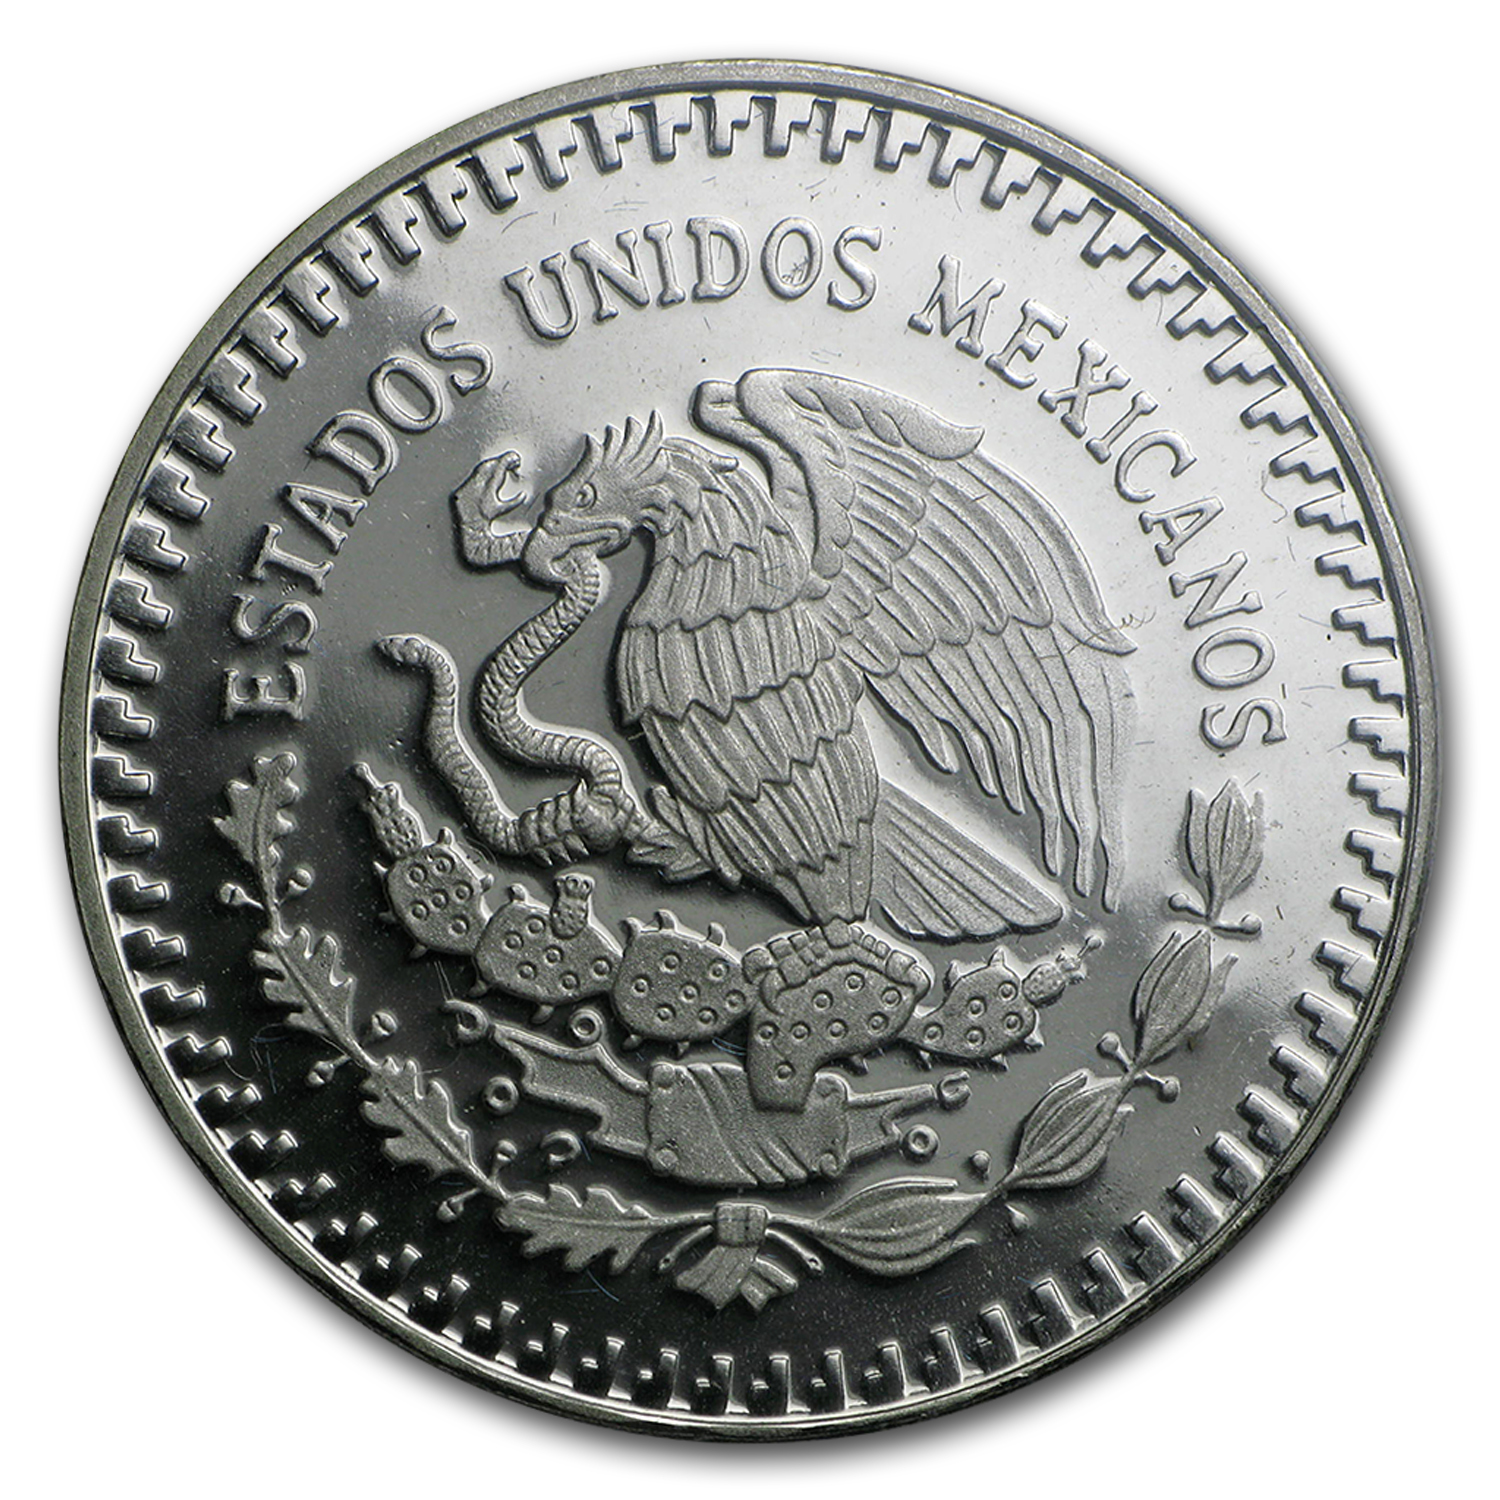 1986 Mexico 1 oz Silver Libertad Proof (w/Box & COA)